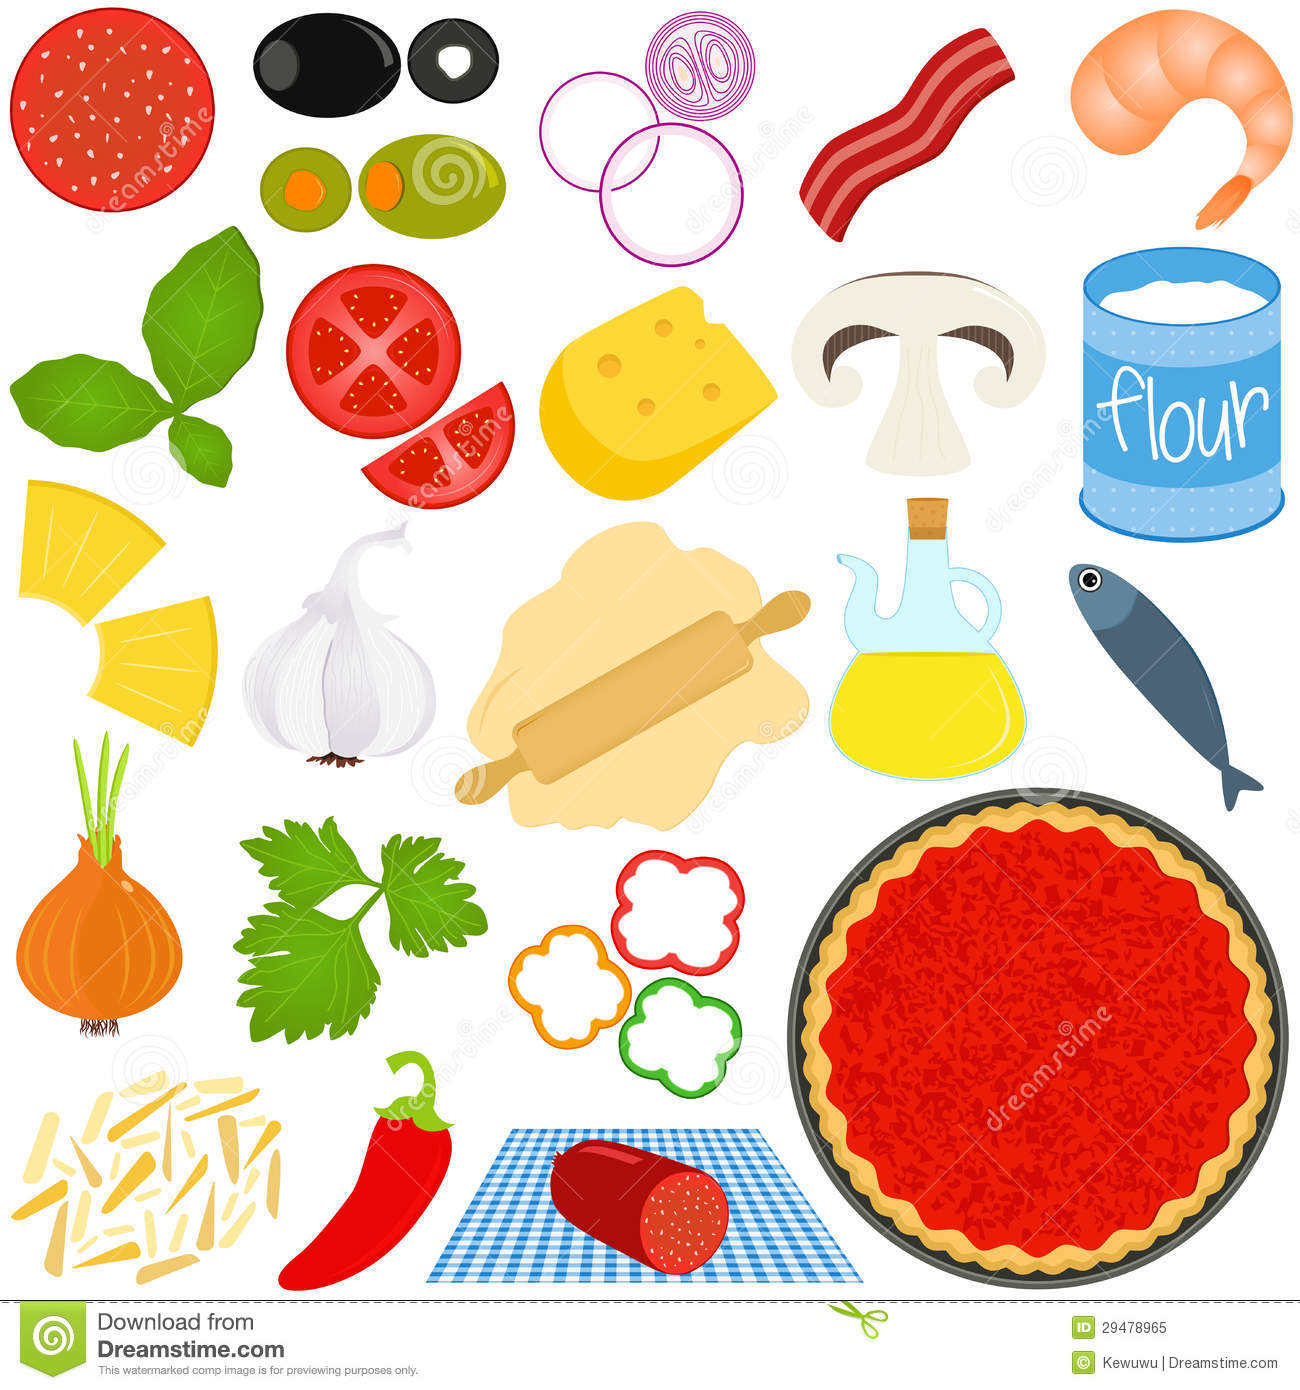 Pizza Toppings Clipart Ingredients To Ma-Pizza Toppings Clipart Ingredients To Make Pizza-14